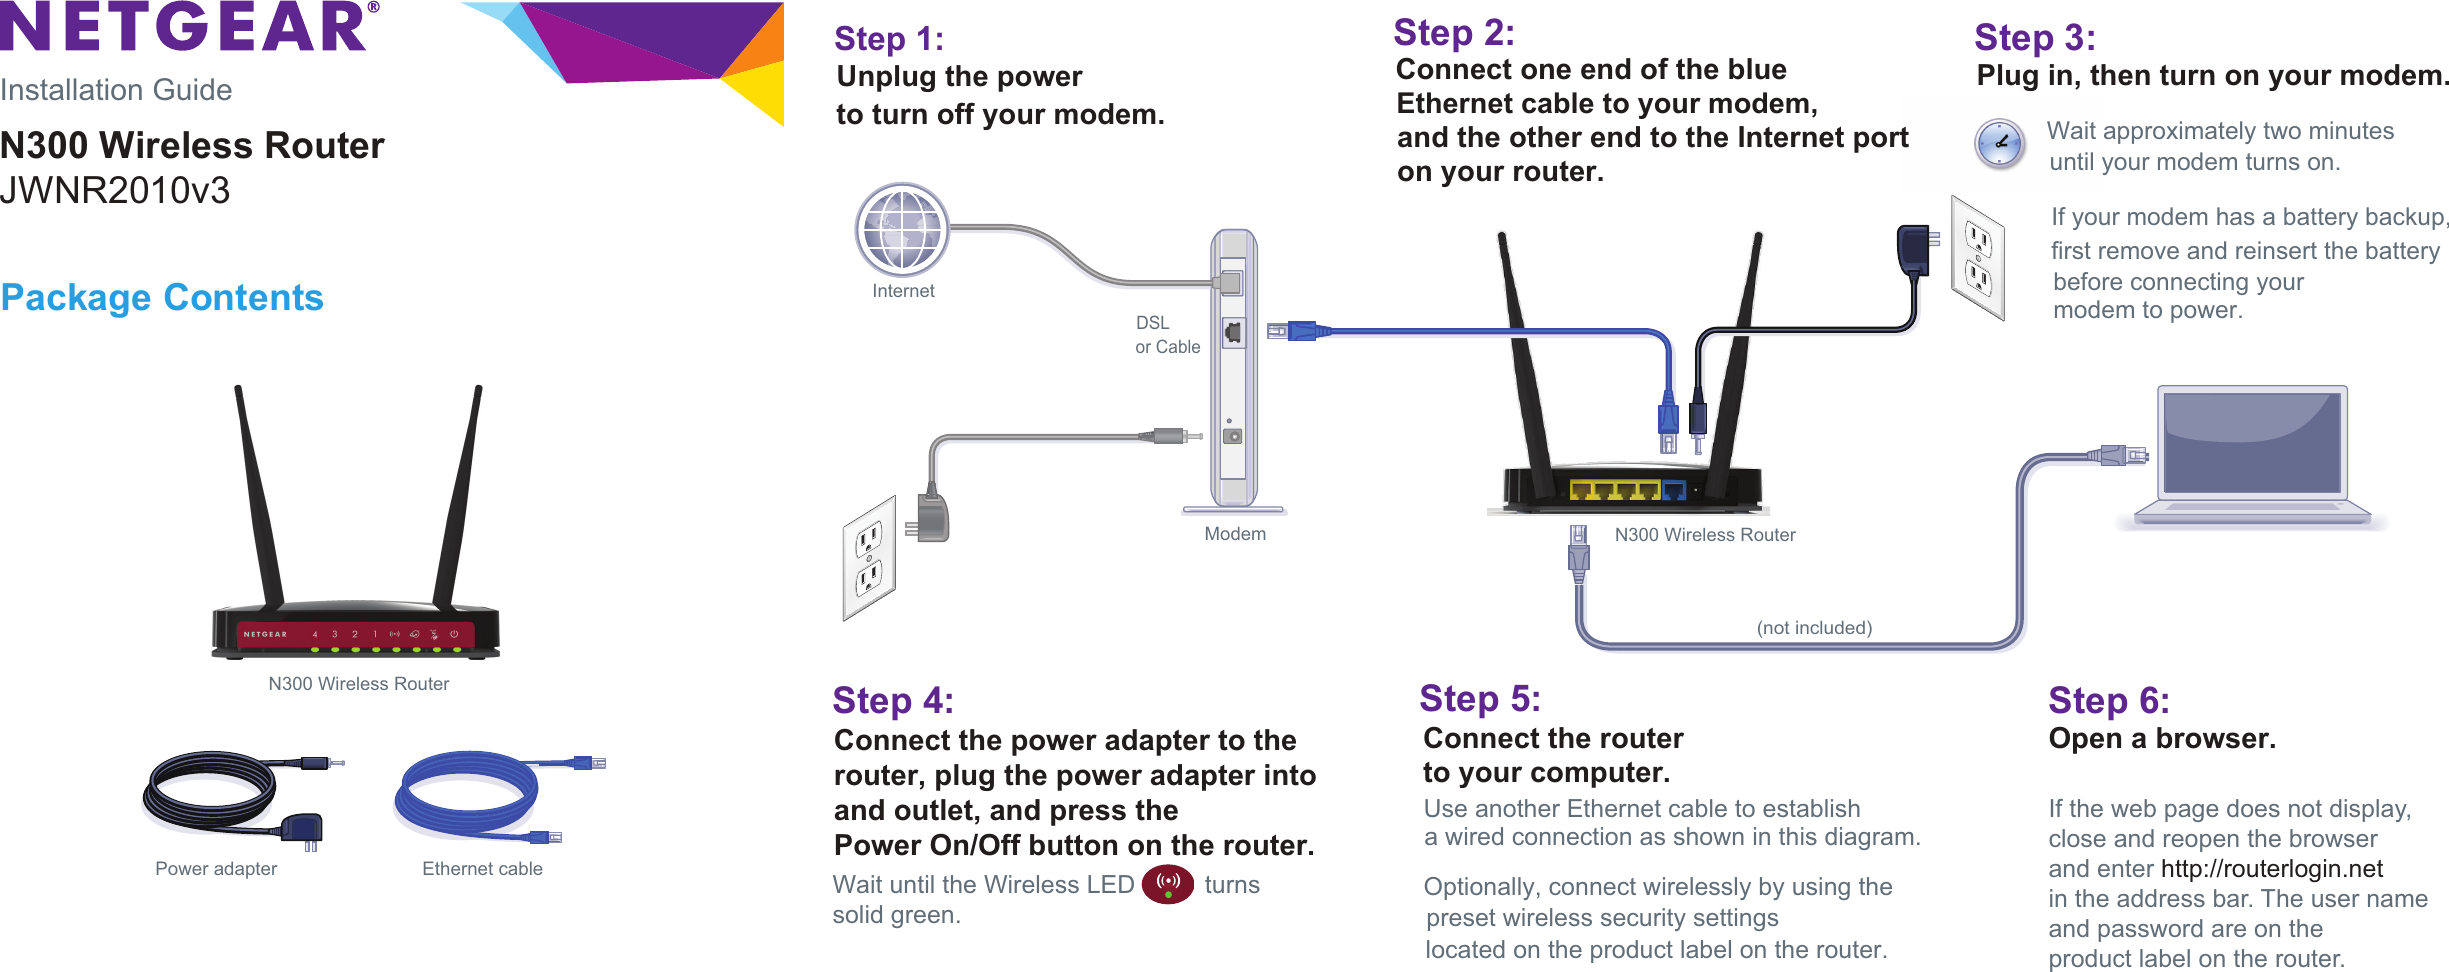 Netgear Jwnr2010V3 Quick Start Guide N300 Wireless Router Installation